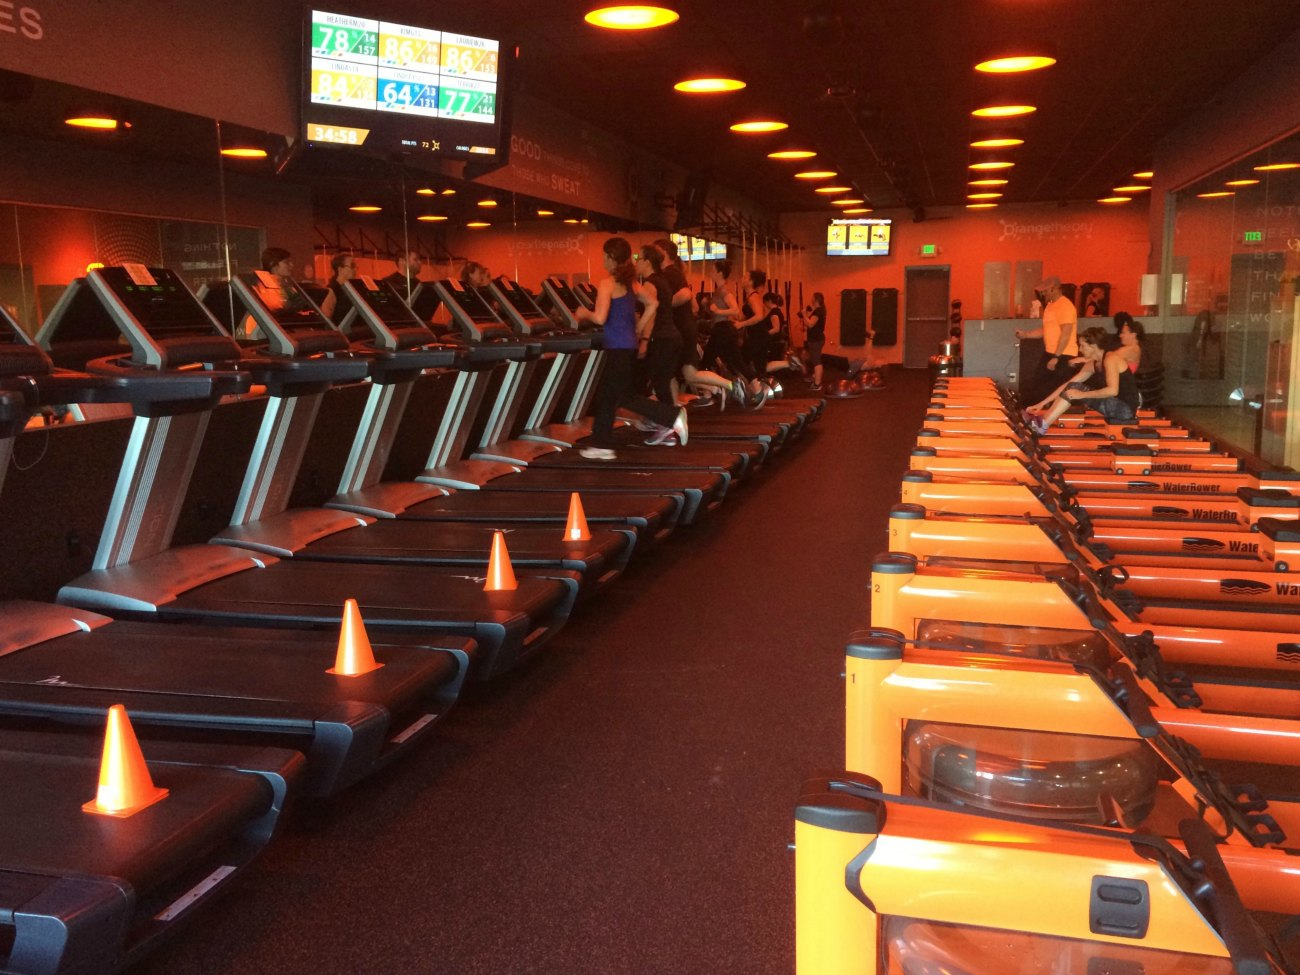 OrangeTheory is the ultimate data-driven workout for fans of the quantified self